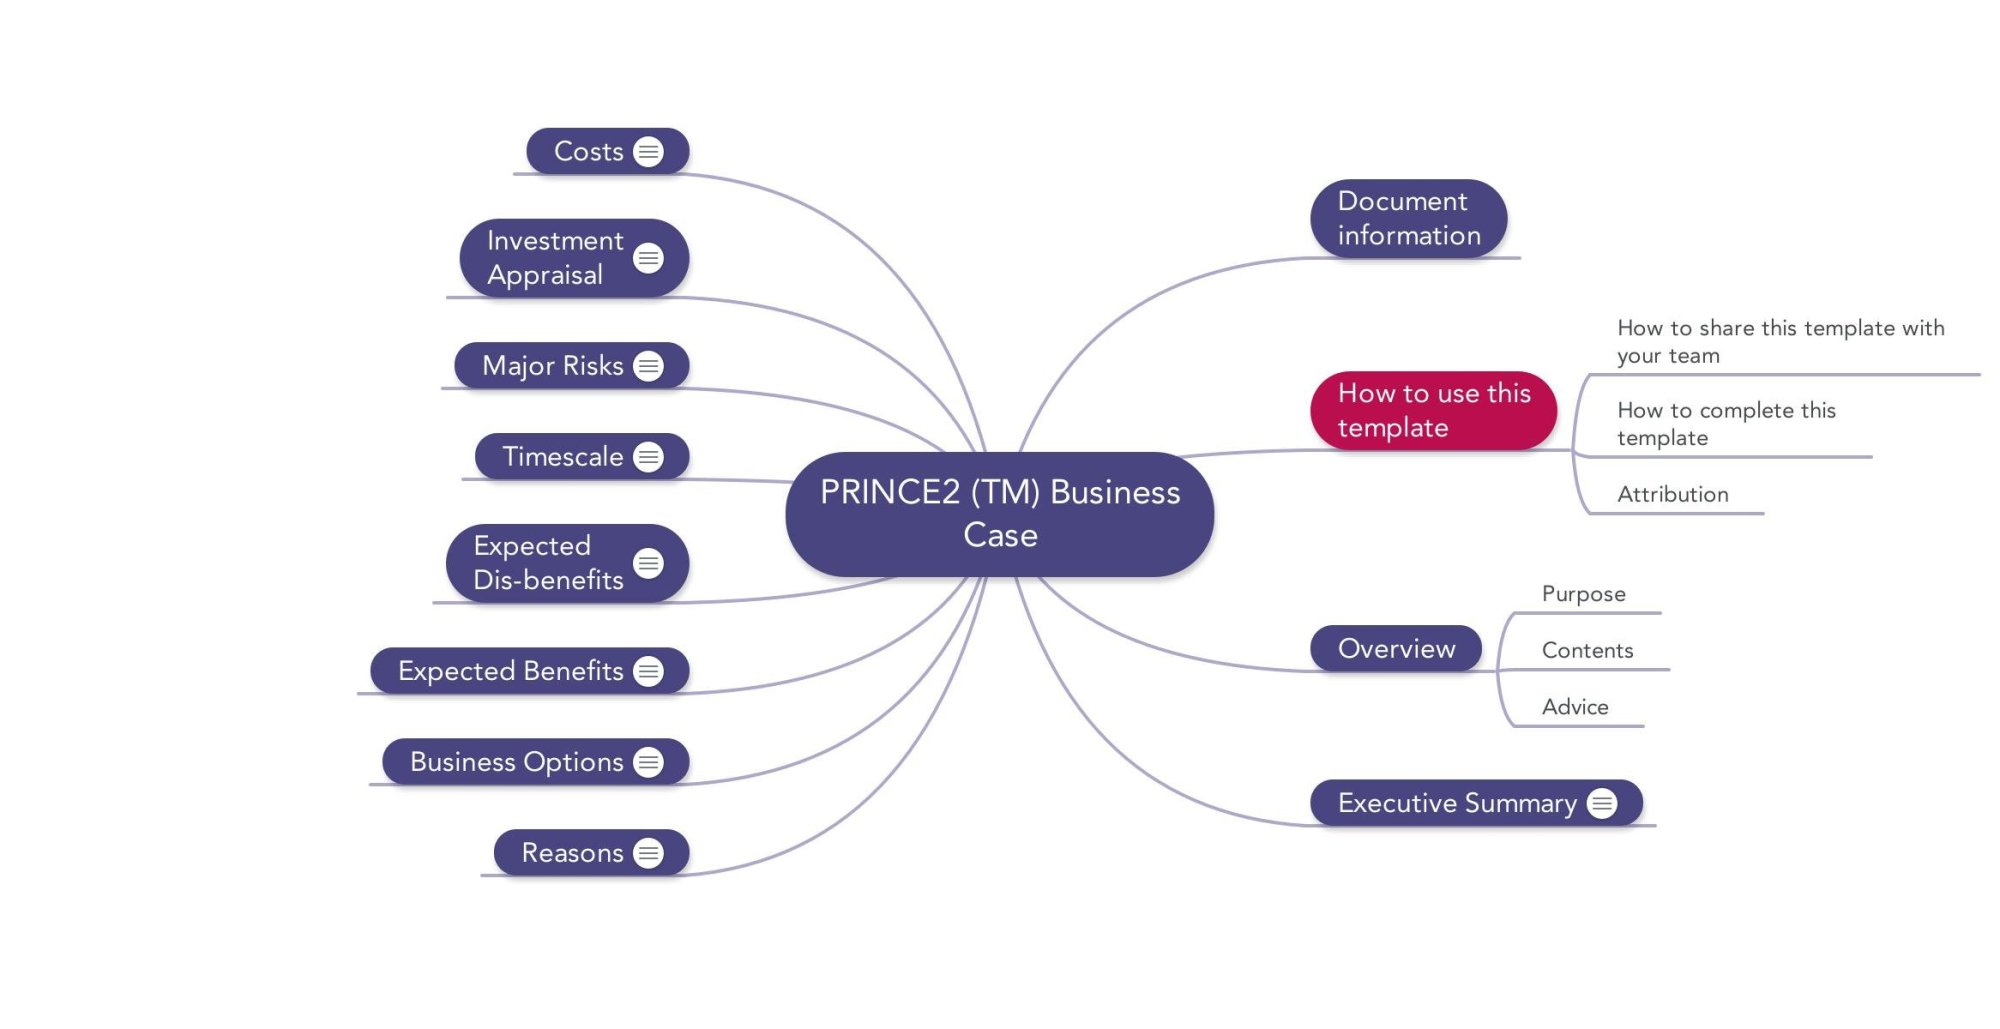 hight resolution of prince2 templates mind maps word excel and pdf business case prince2 process flow diagram